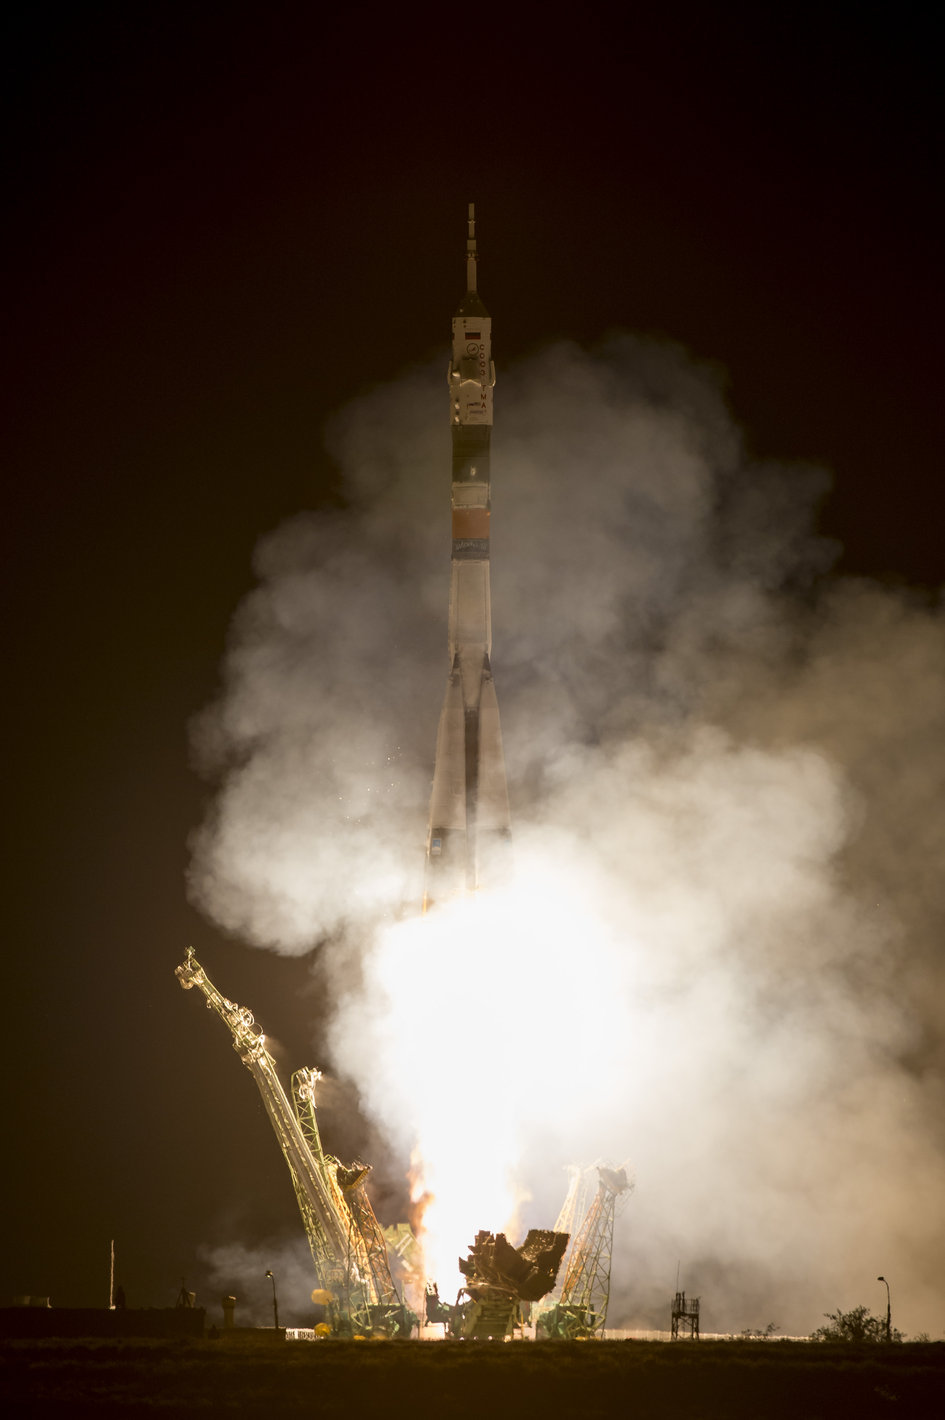 Expedition 36 Crew Launches to Space Station